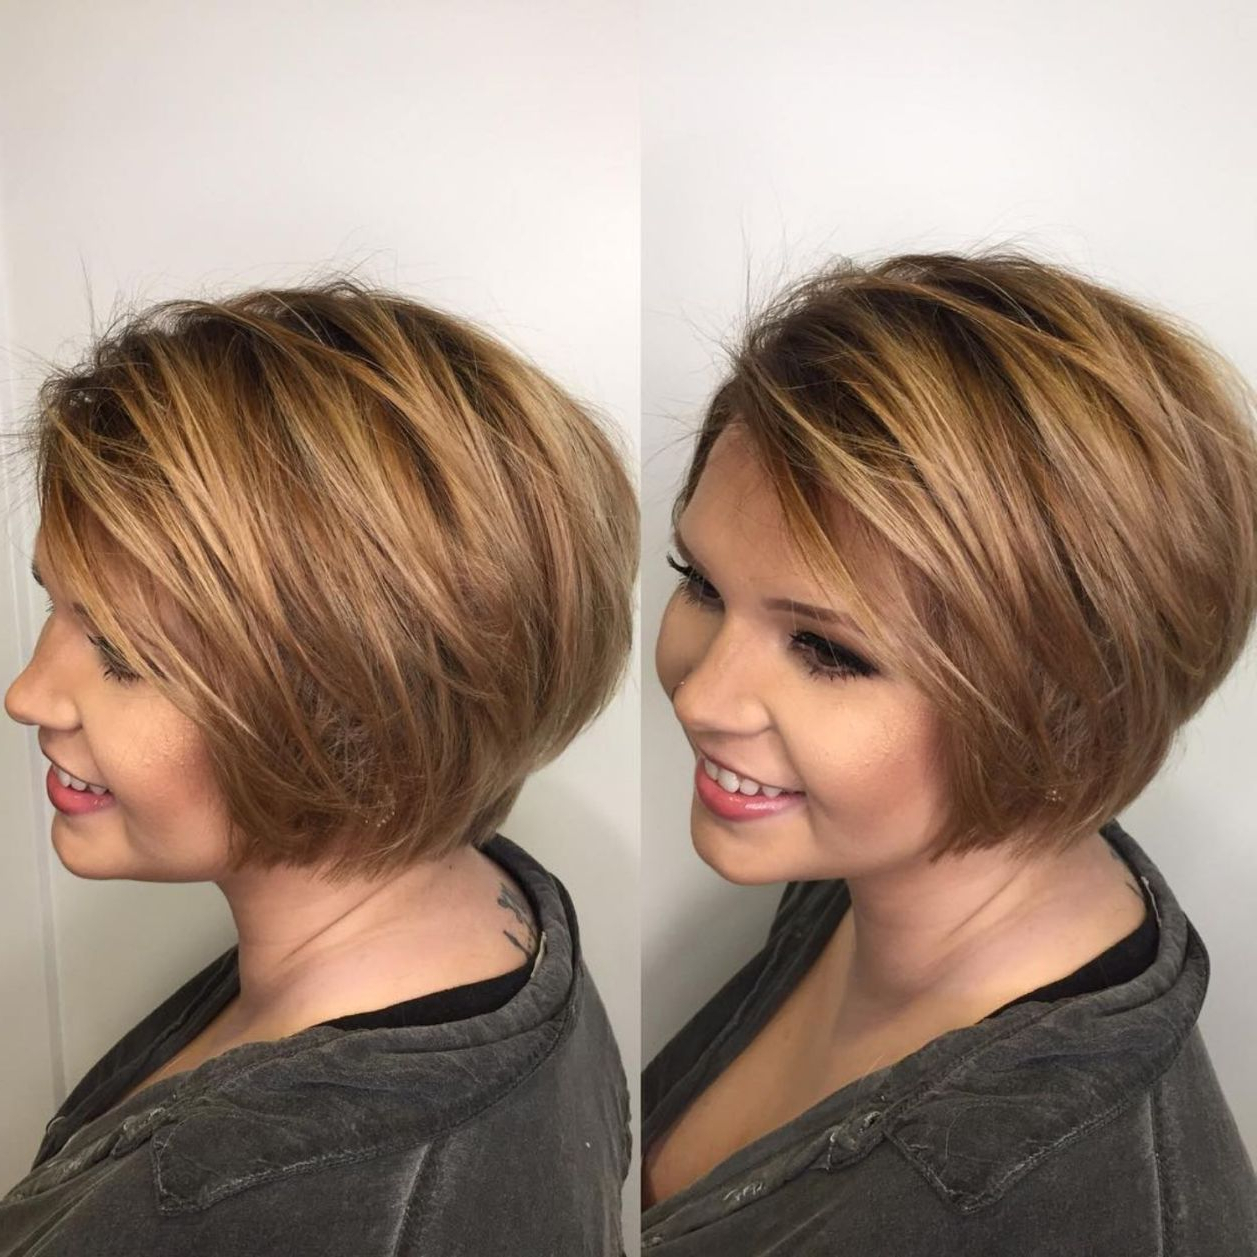 Most Recent Textured Bob With Side Part Hairstyles Within Top 60 Flattering Hairstyles For Round Faces In  (View 12 of 20)